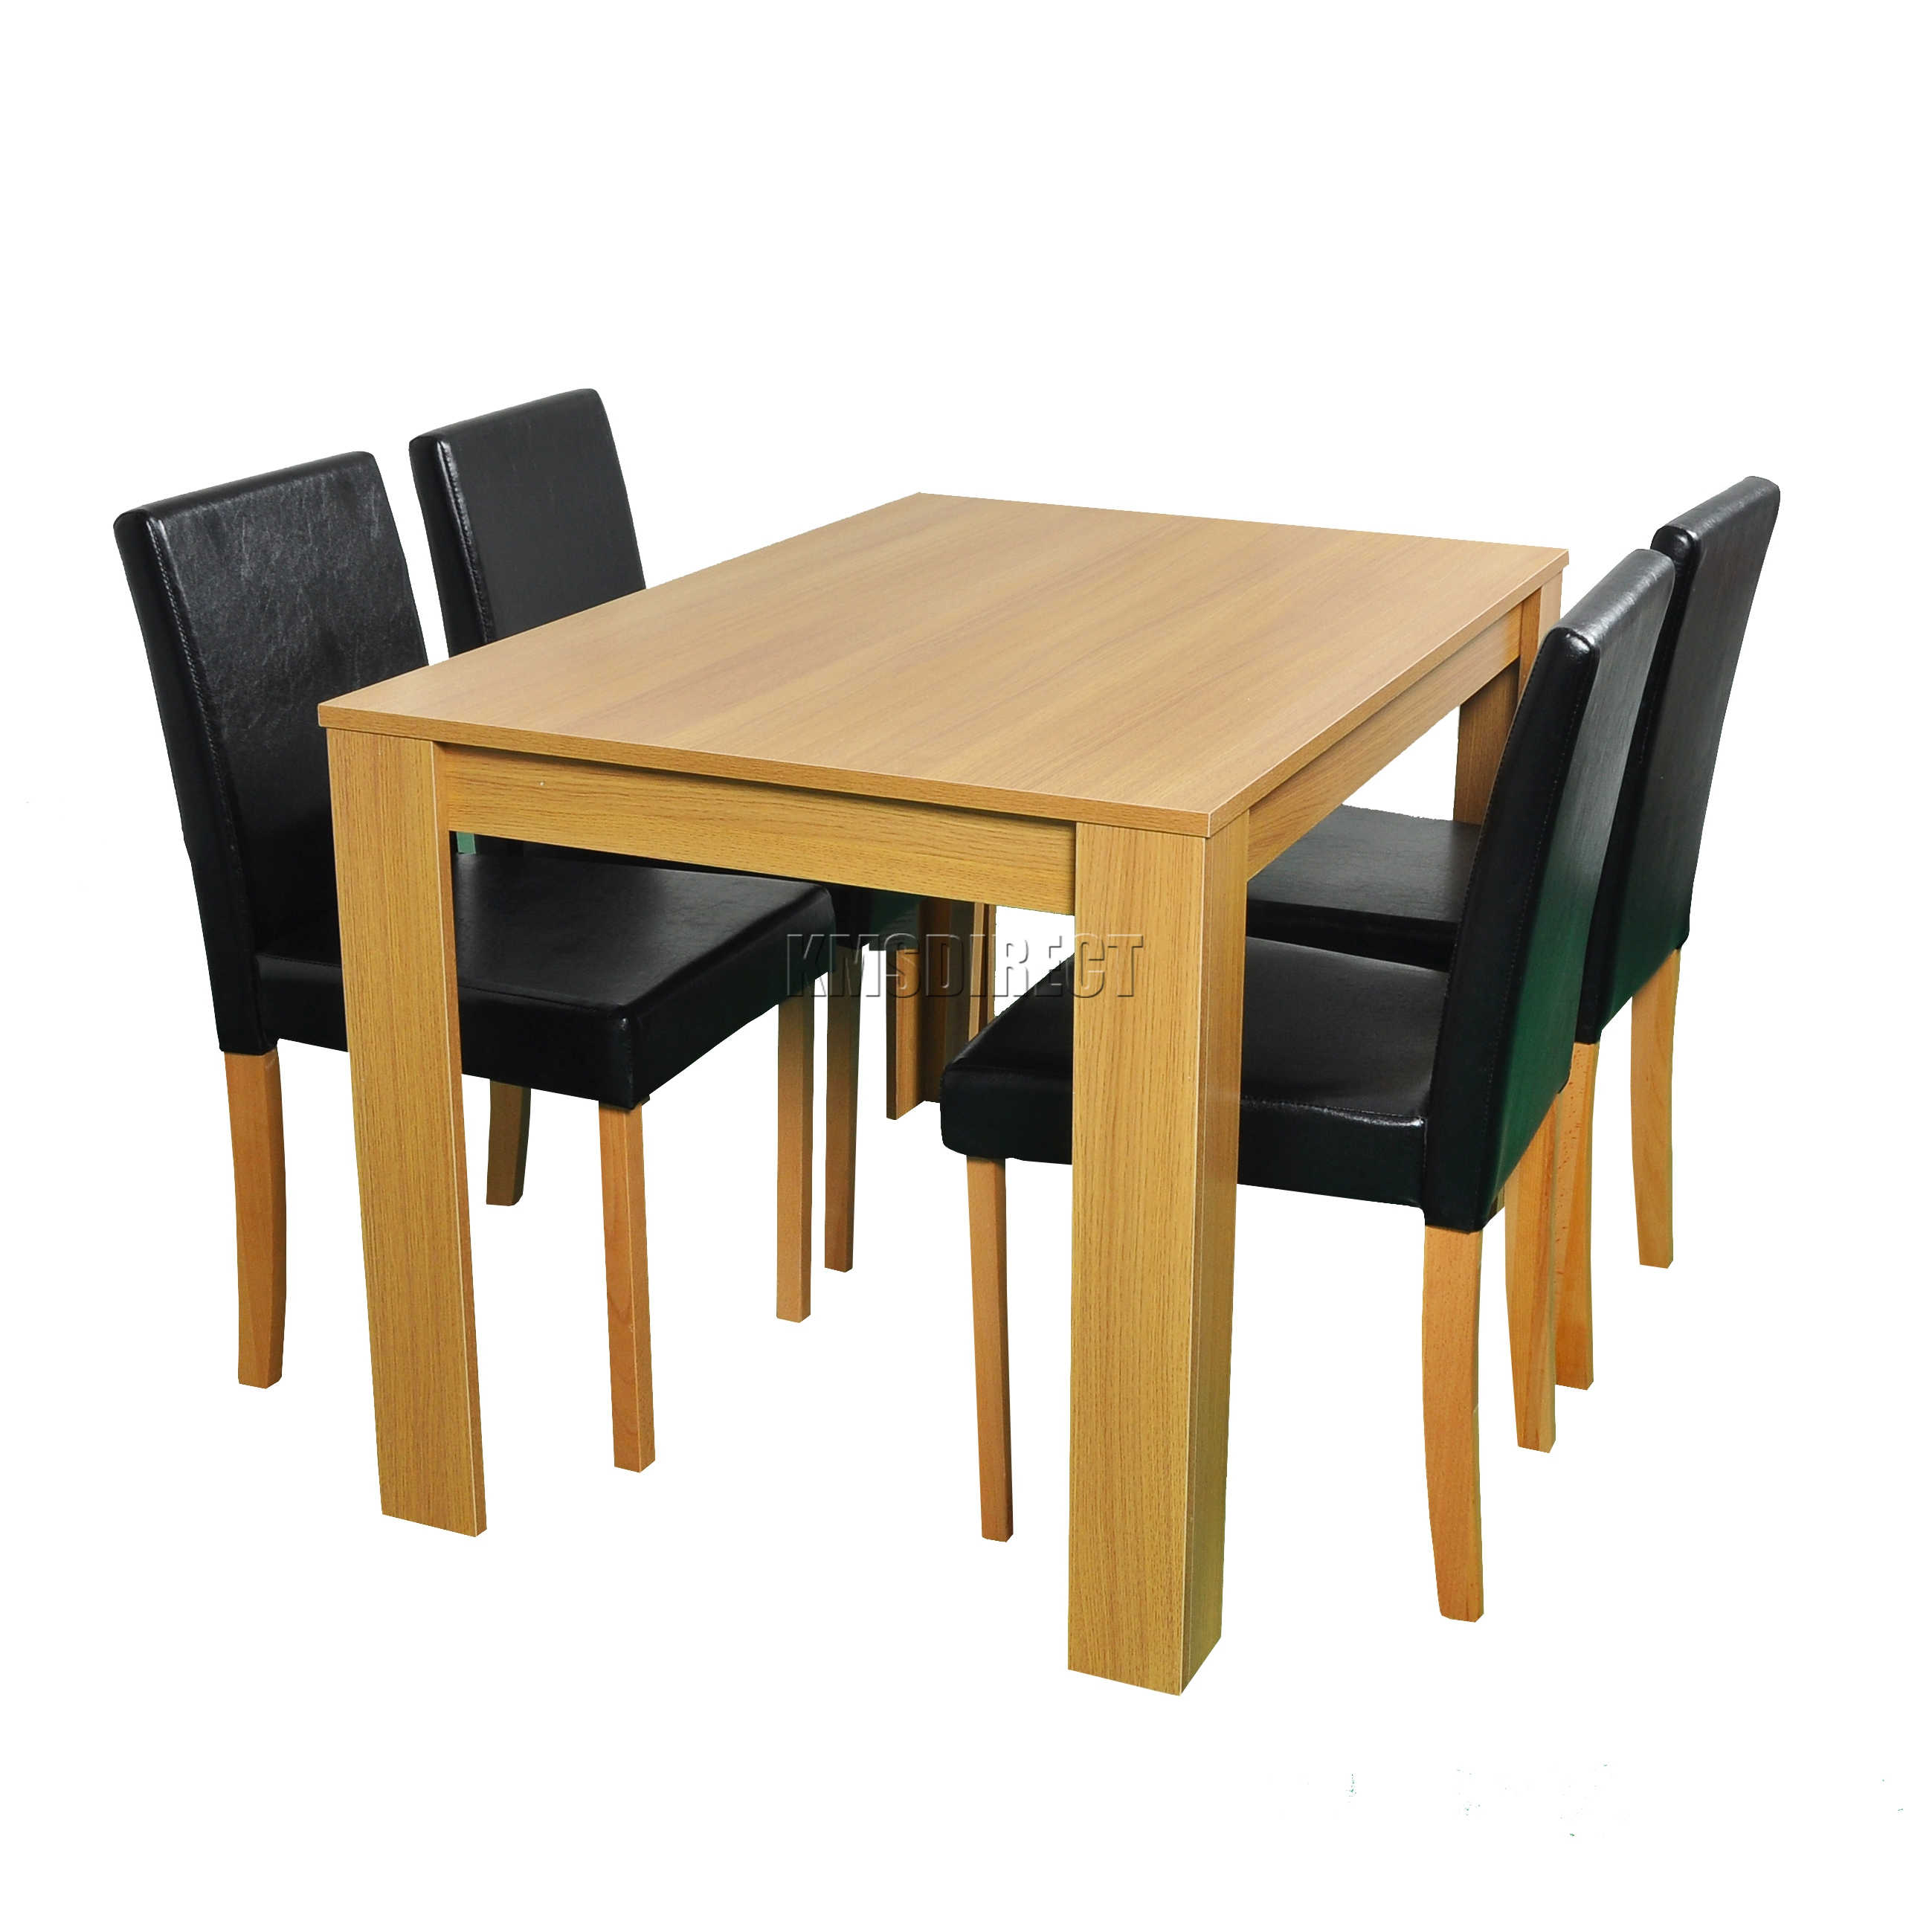 FoxHunter Wooden Dining Table And 4 PU Faux Leather Chairs Set Furniture Oak